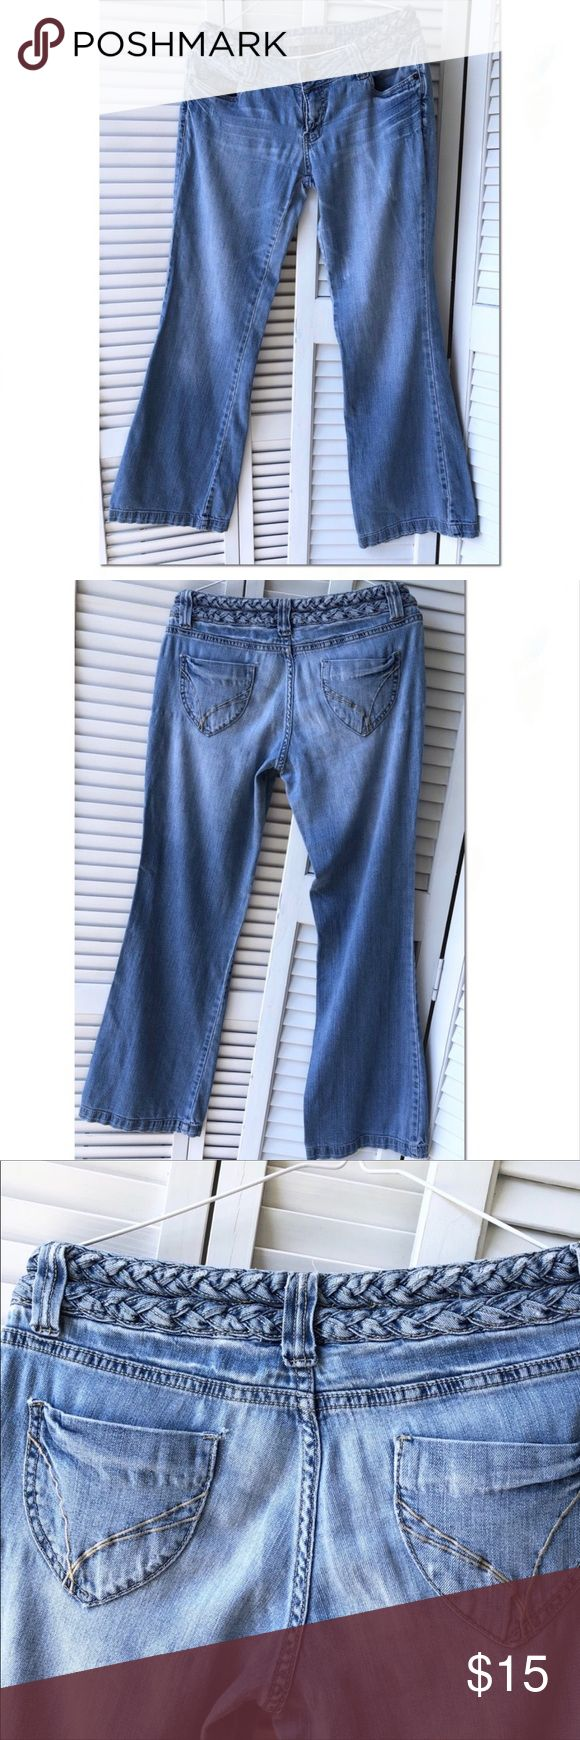 Guc refuge wide leg jeans w/braided waist Sz 11 Guc Refuge distressed jeans with…